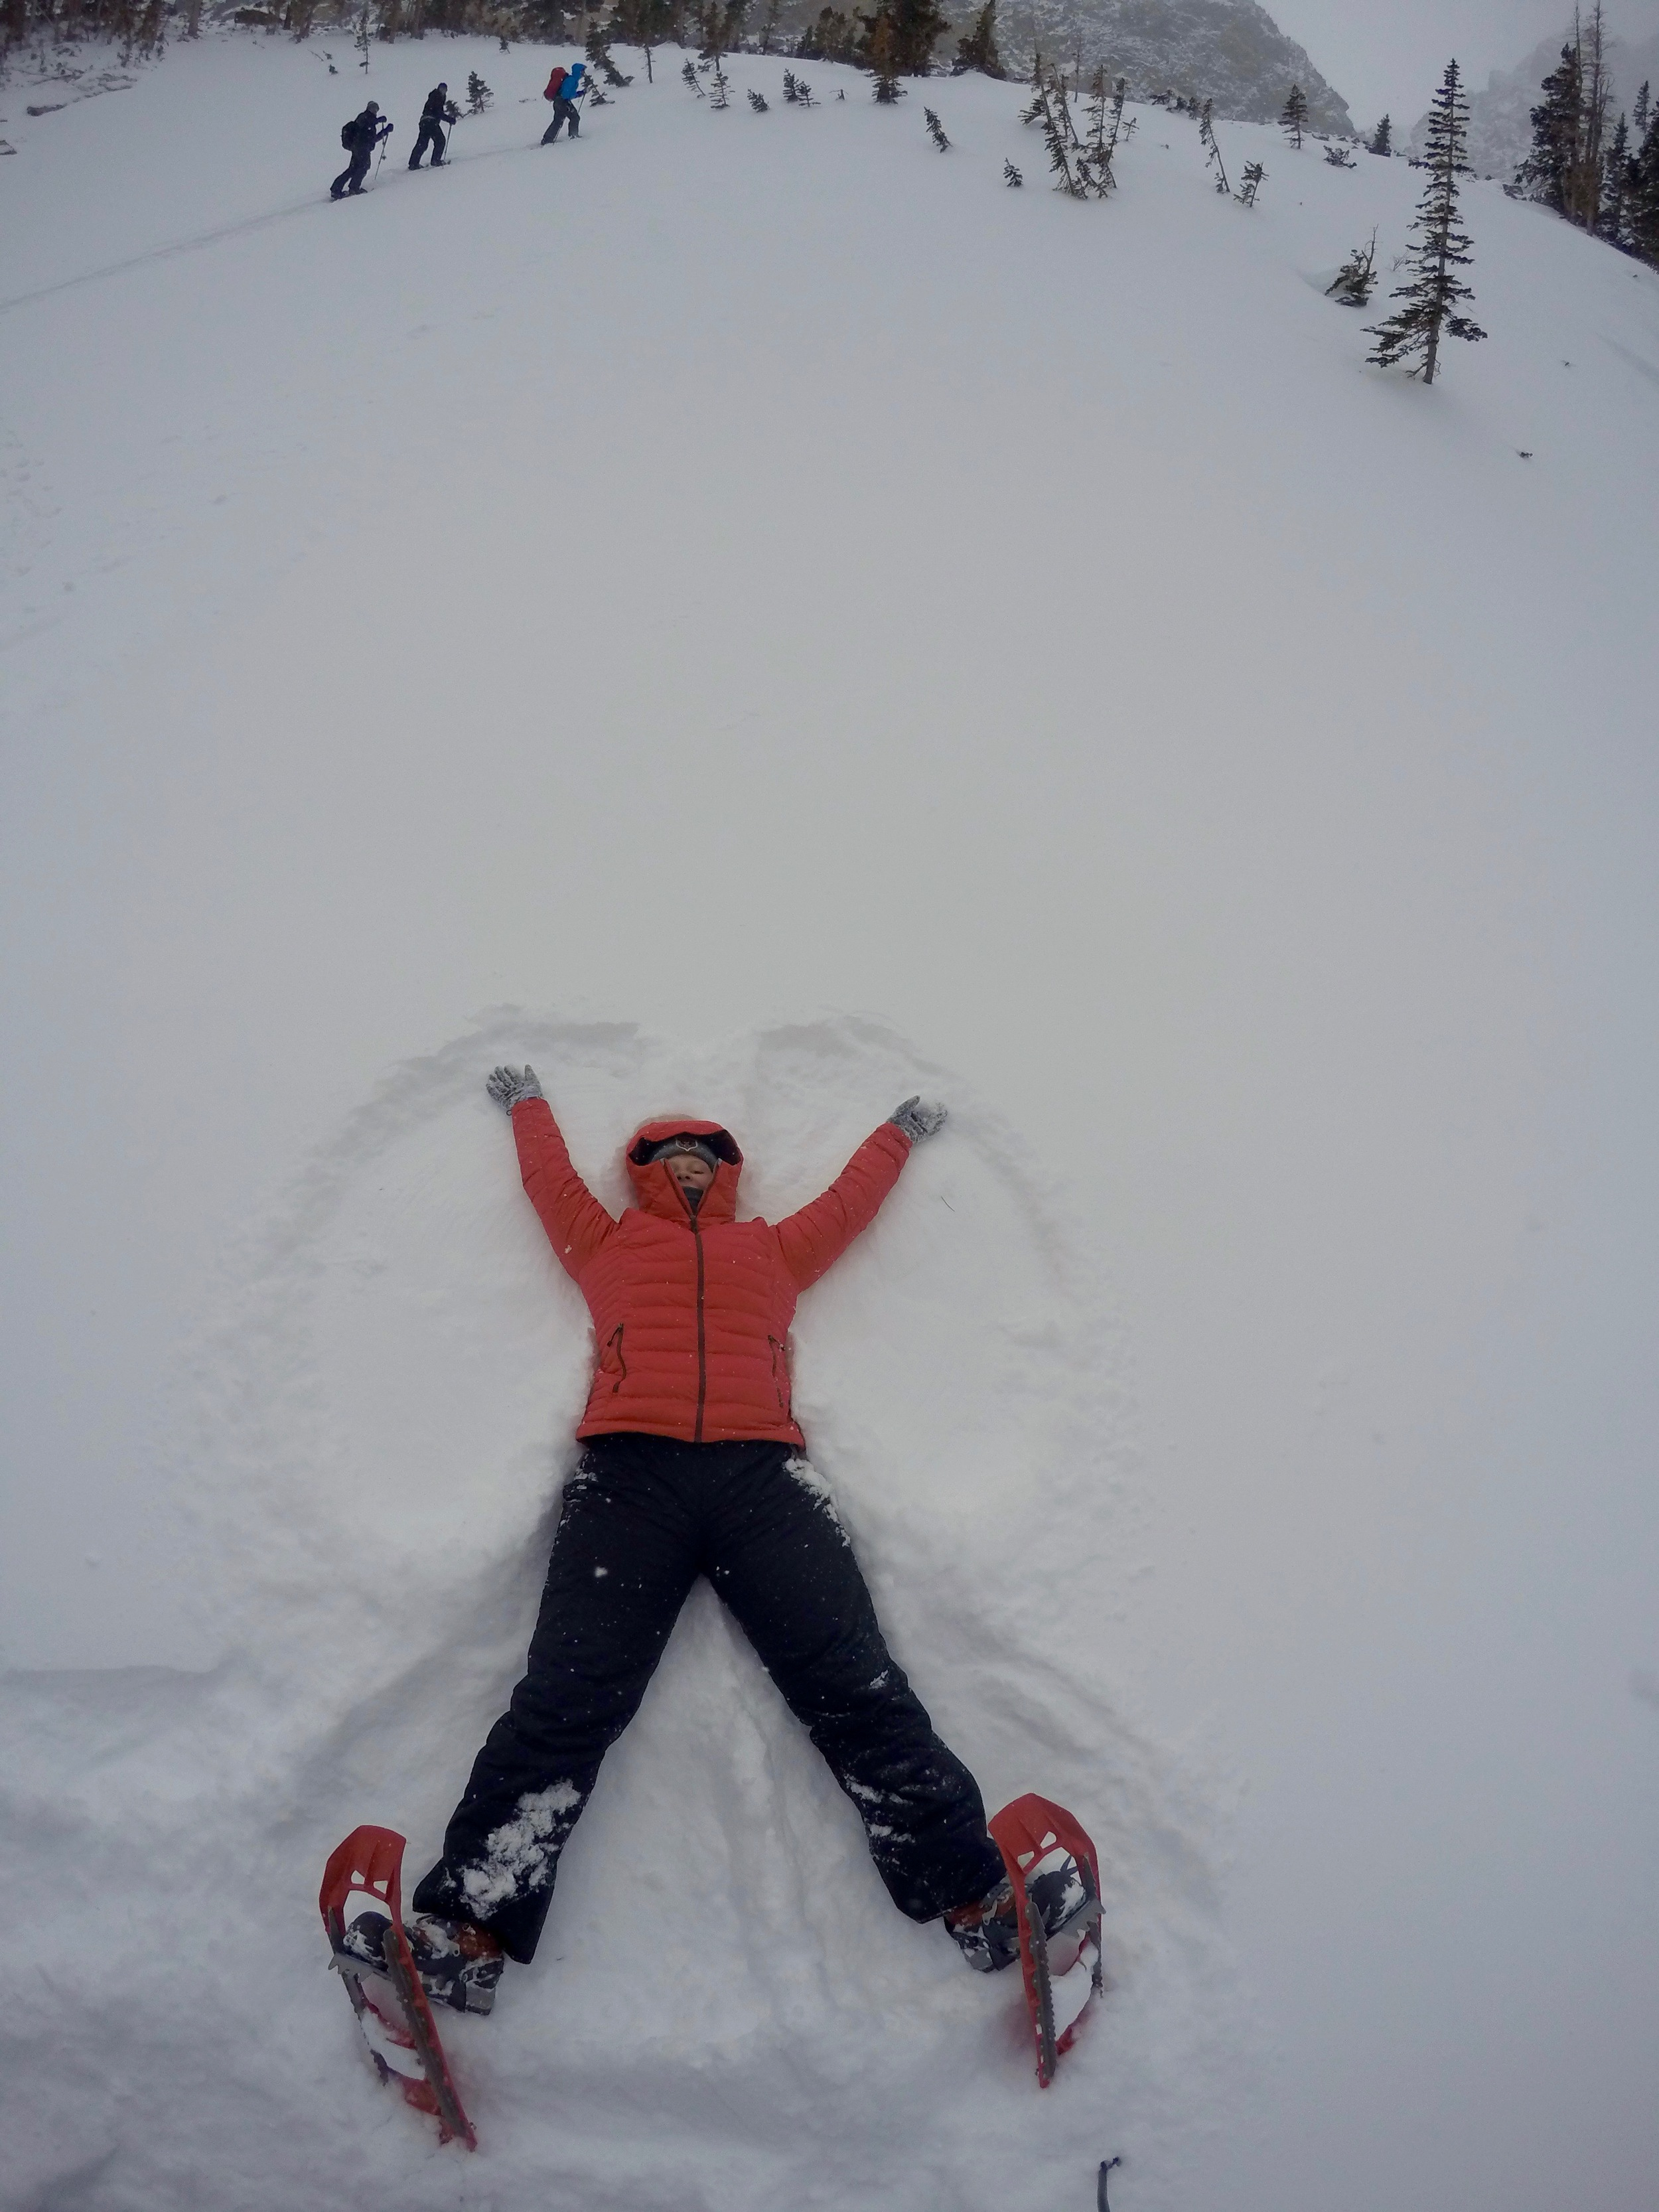 """Making a snow angel at 10,200 ft above sea level on several feet of snow in below five degree weather is a euphoric experience that I would recommend to everyone. Mike called it """"snow angel paradise"""" and there is no better way to describe it."""